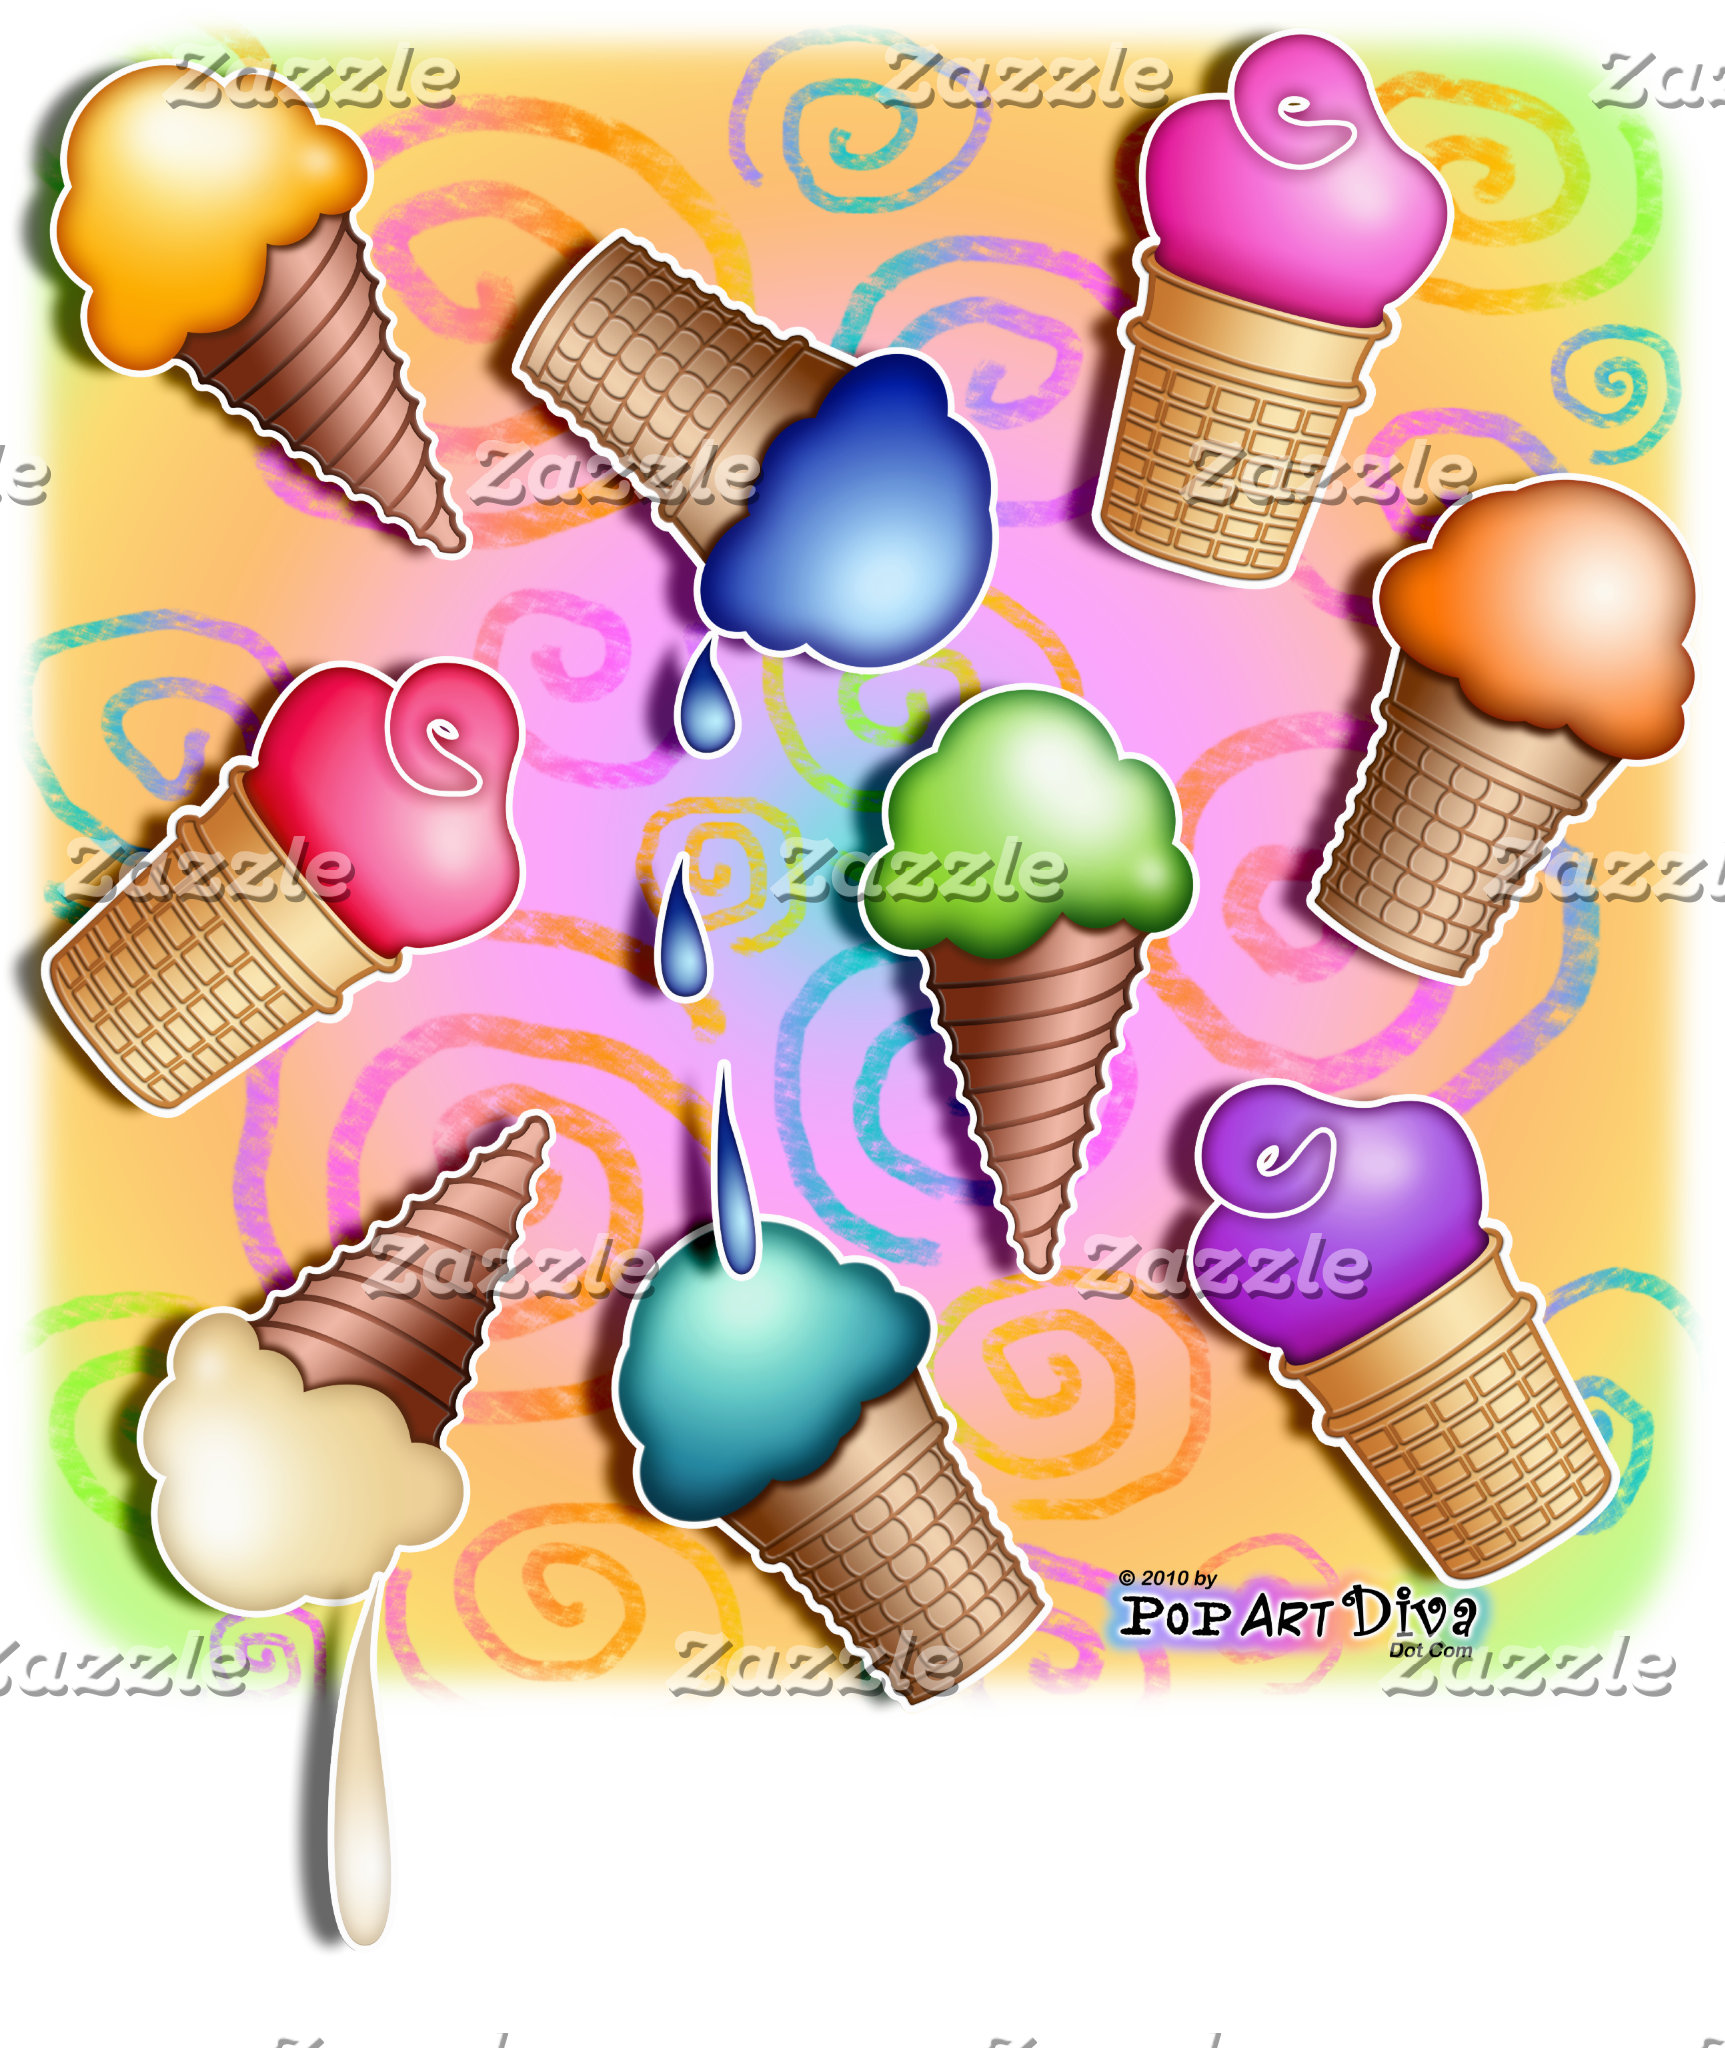 i. ICE CREAM CONE POP ART